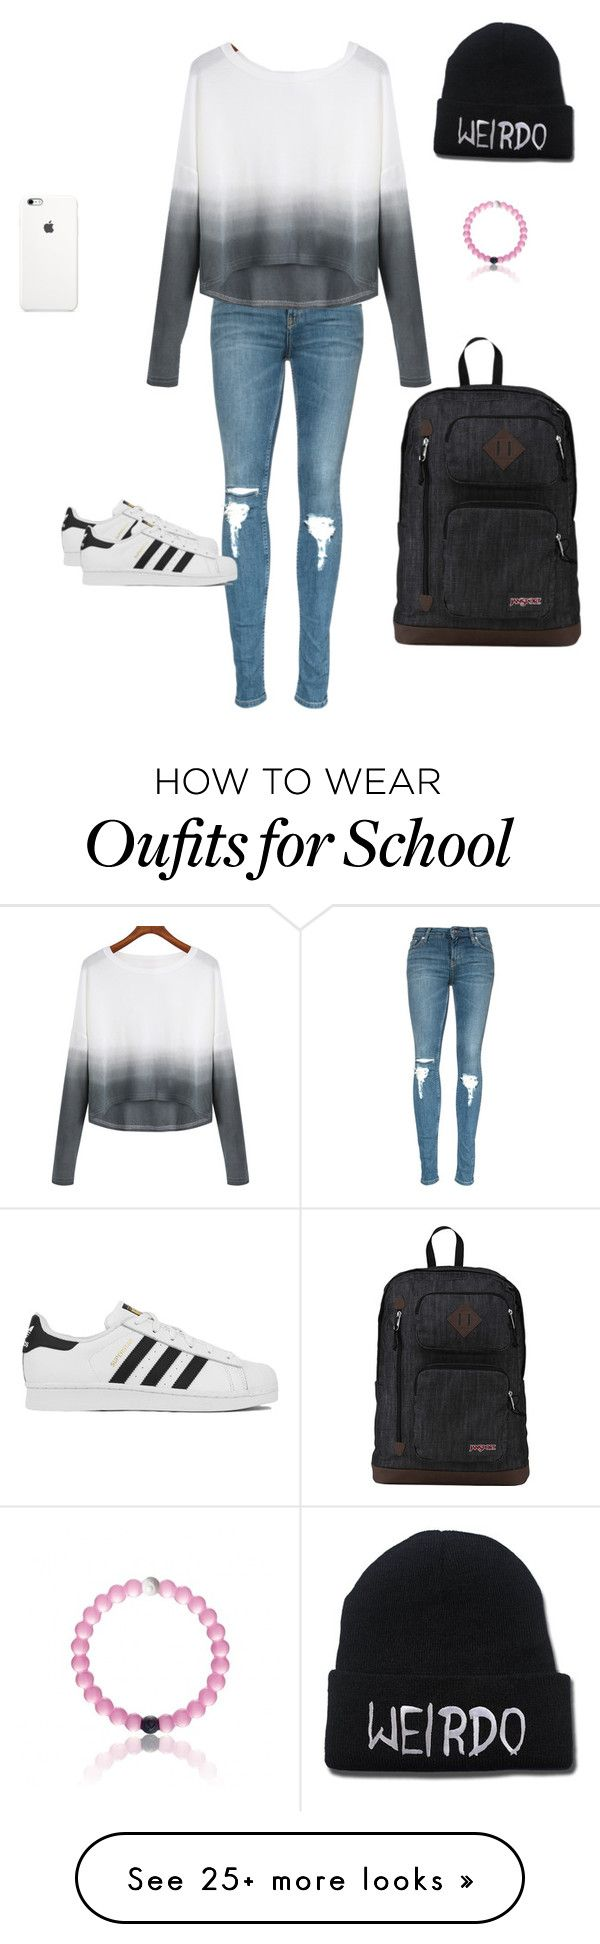 """School outfit idea"" by lauren007 on Polyvore featuring adidas, JanSport, women's clothing, women's fashion, women, female, woman, misses and juniors"